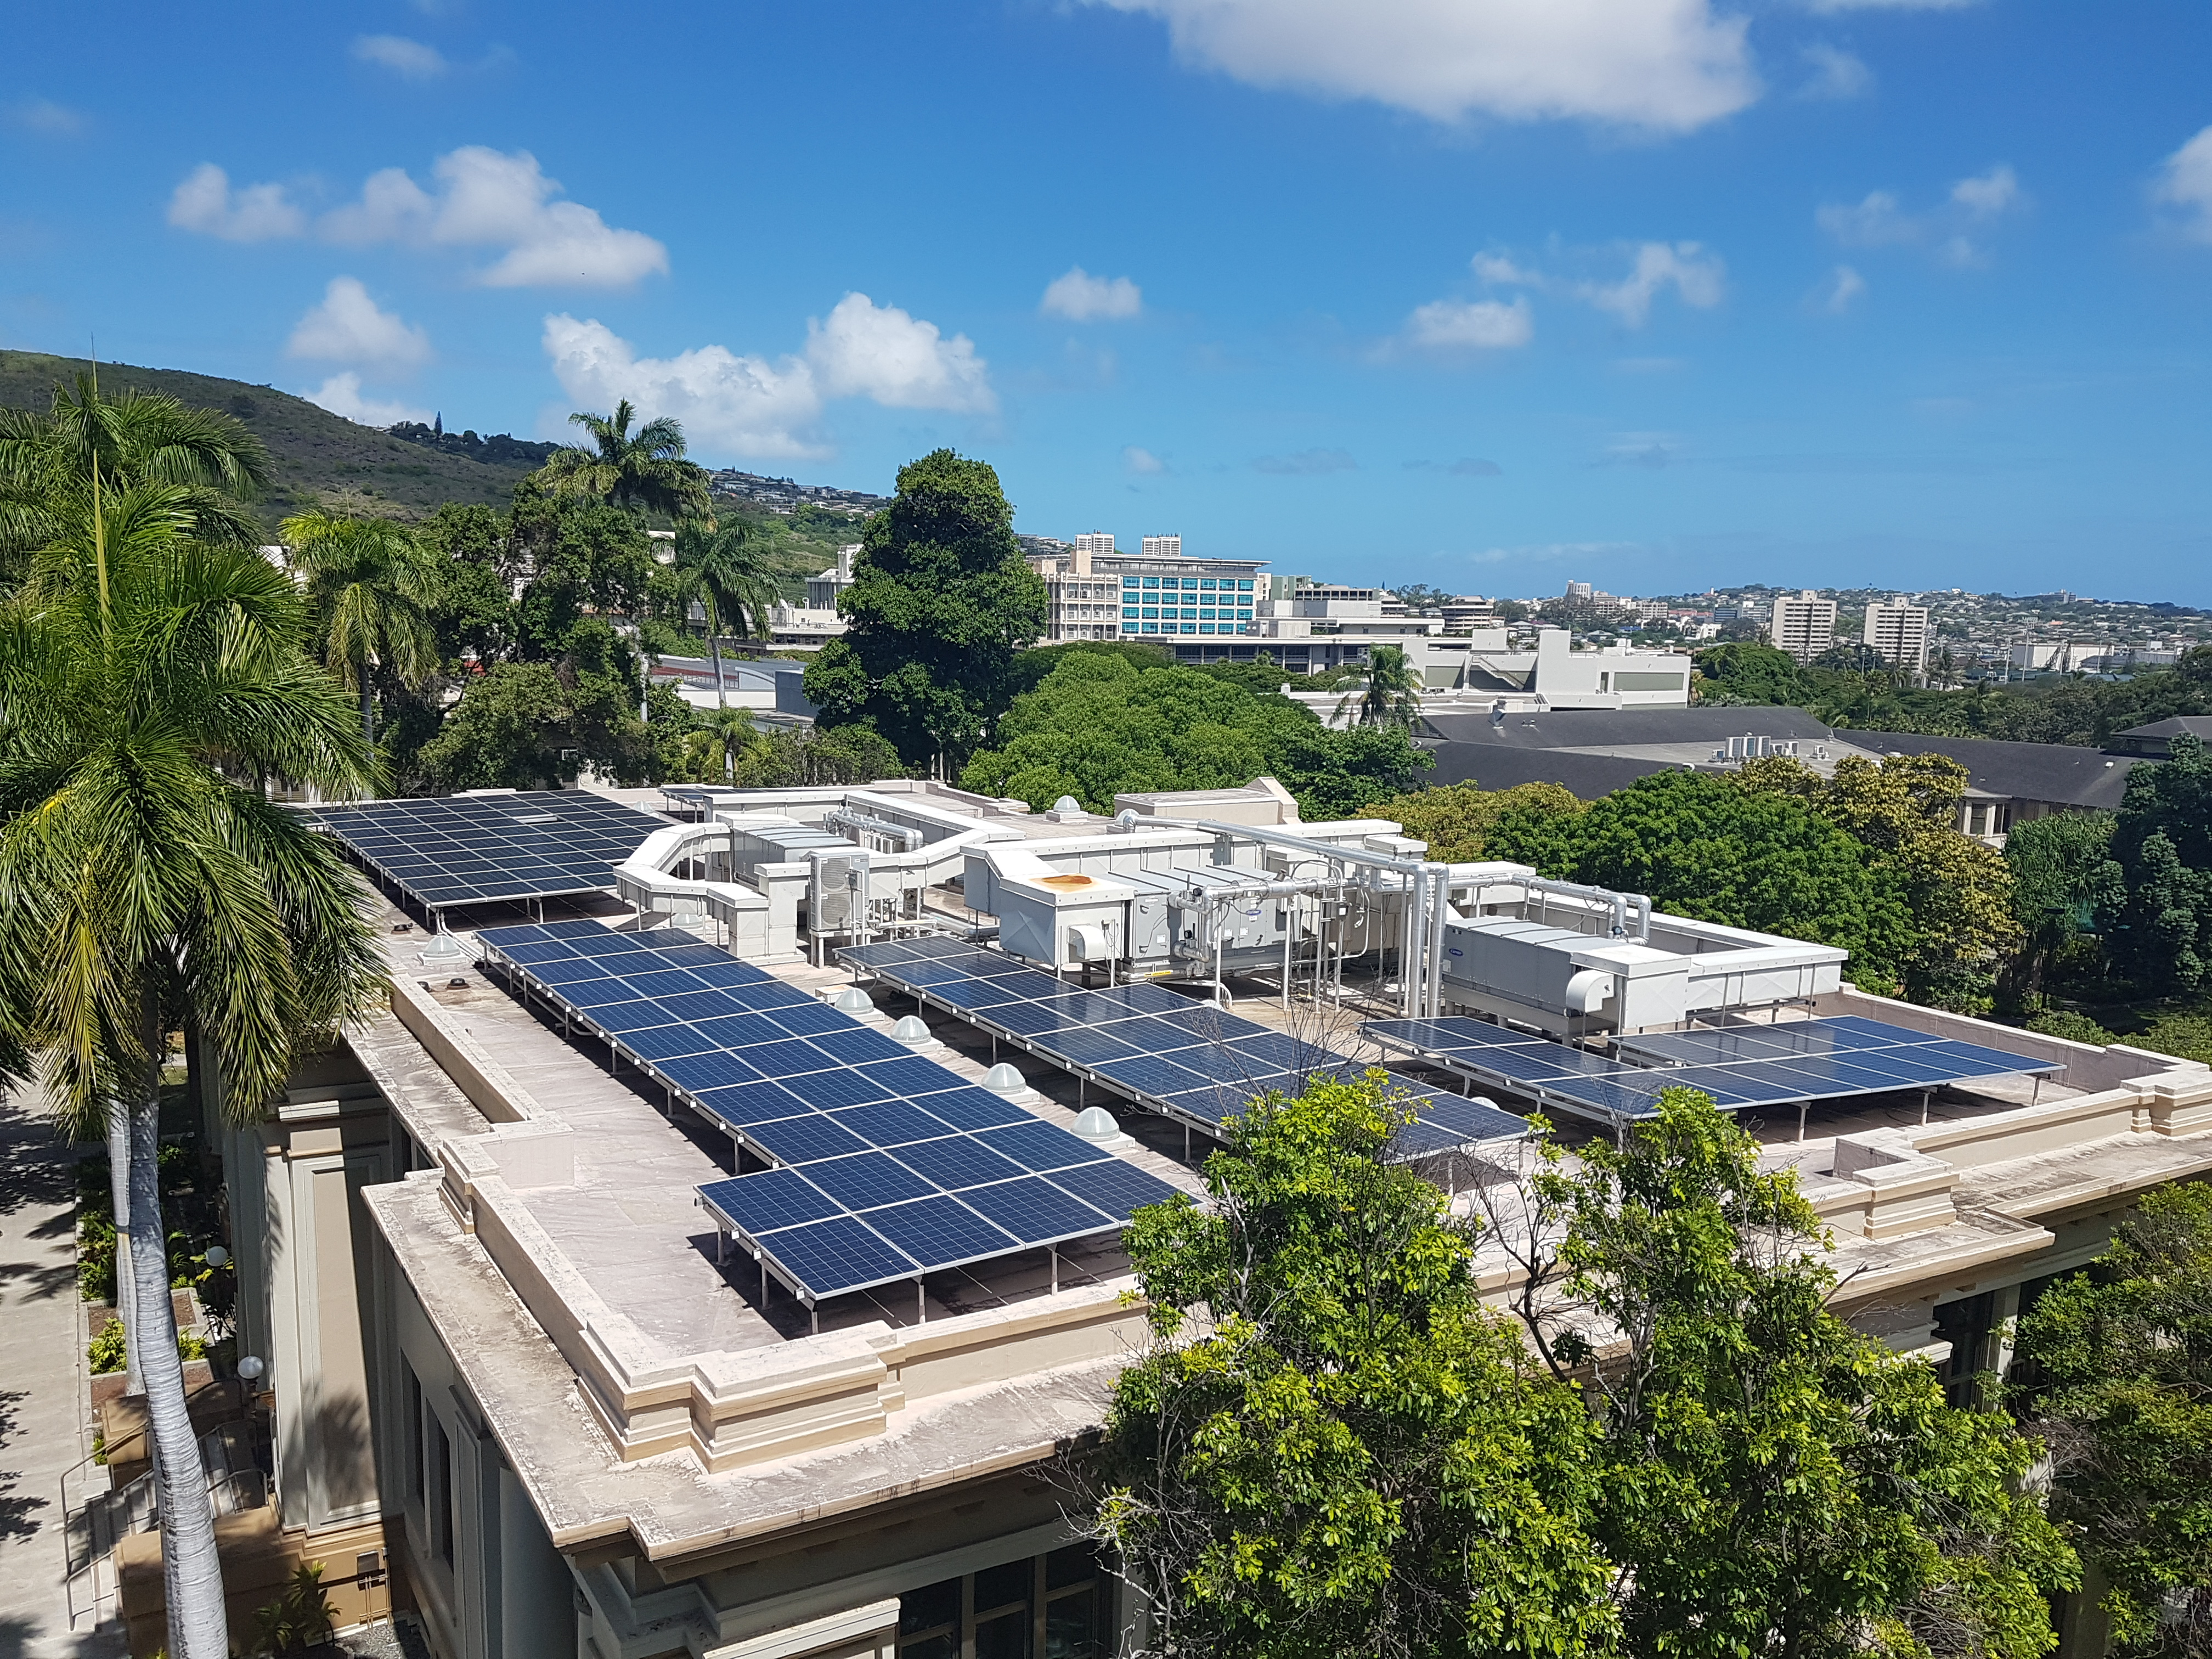 Rooftop Photovoltaic Panels On Gartley Hall